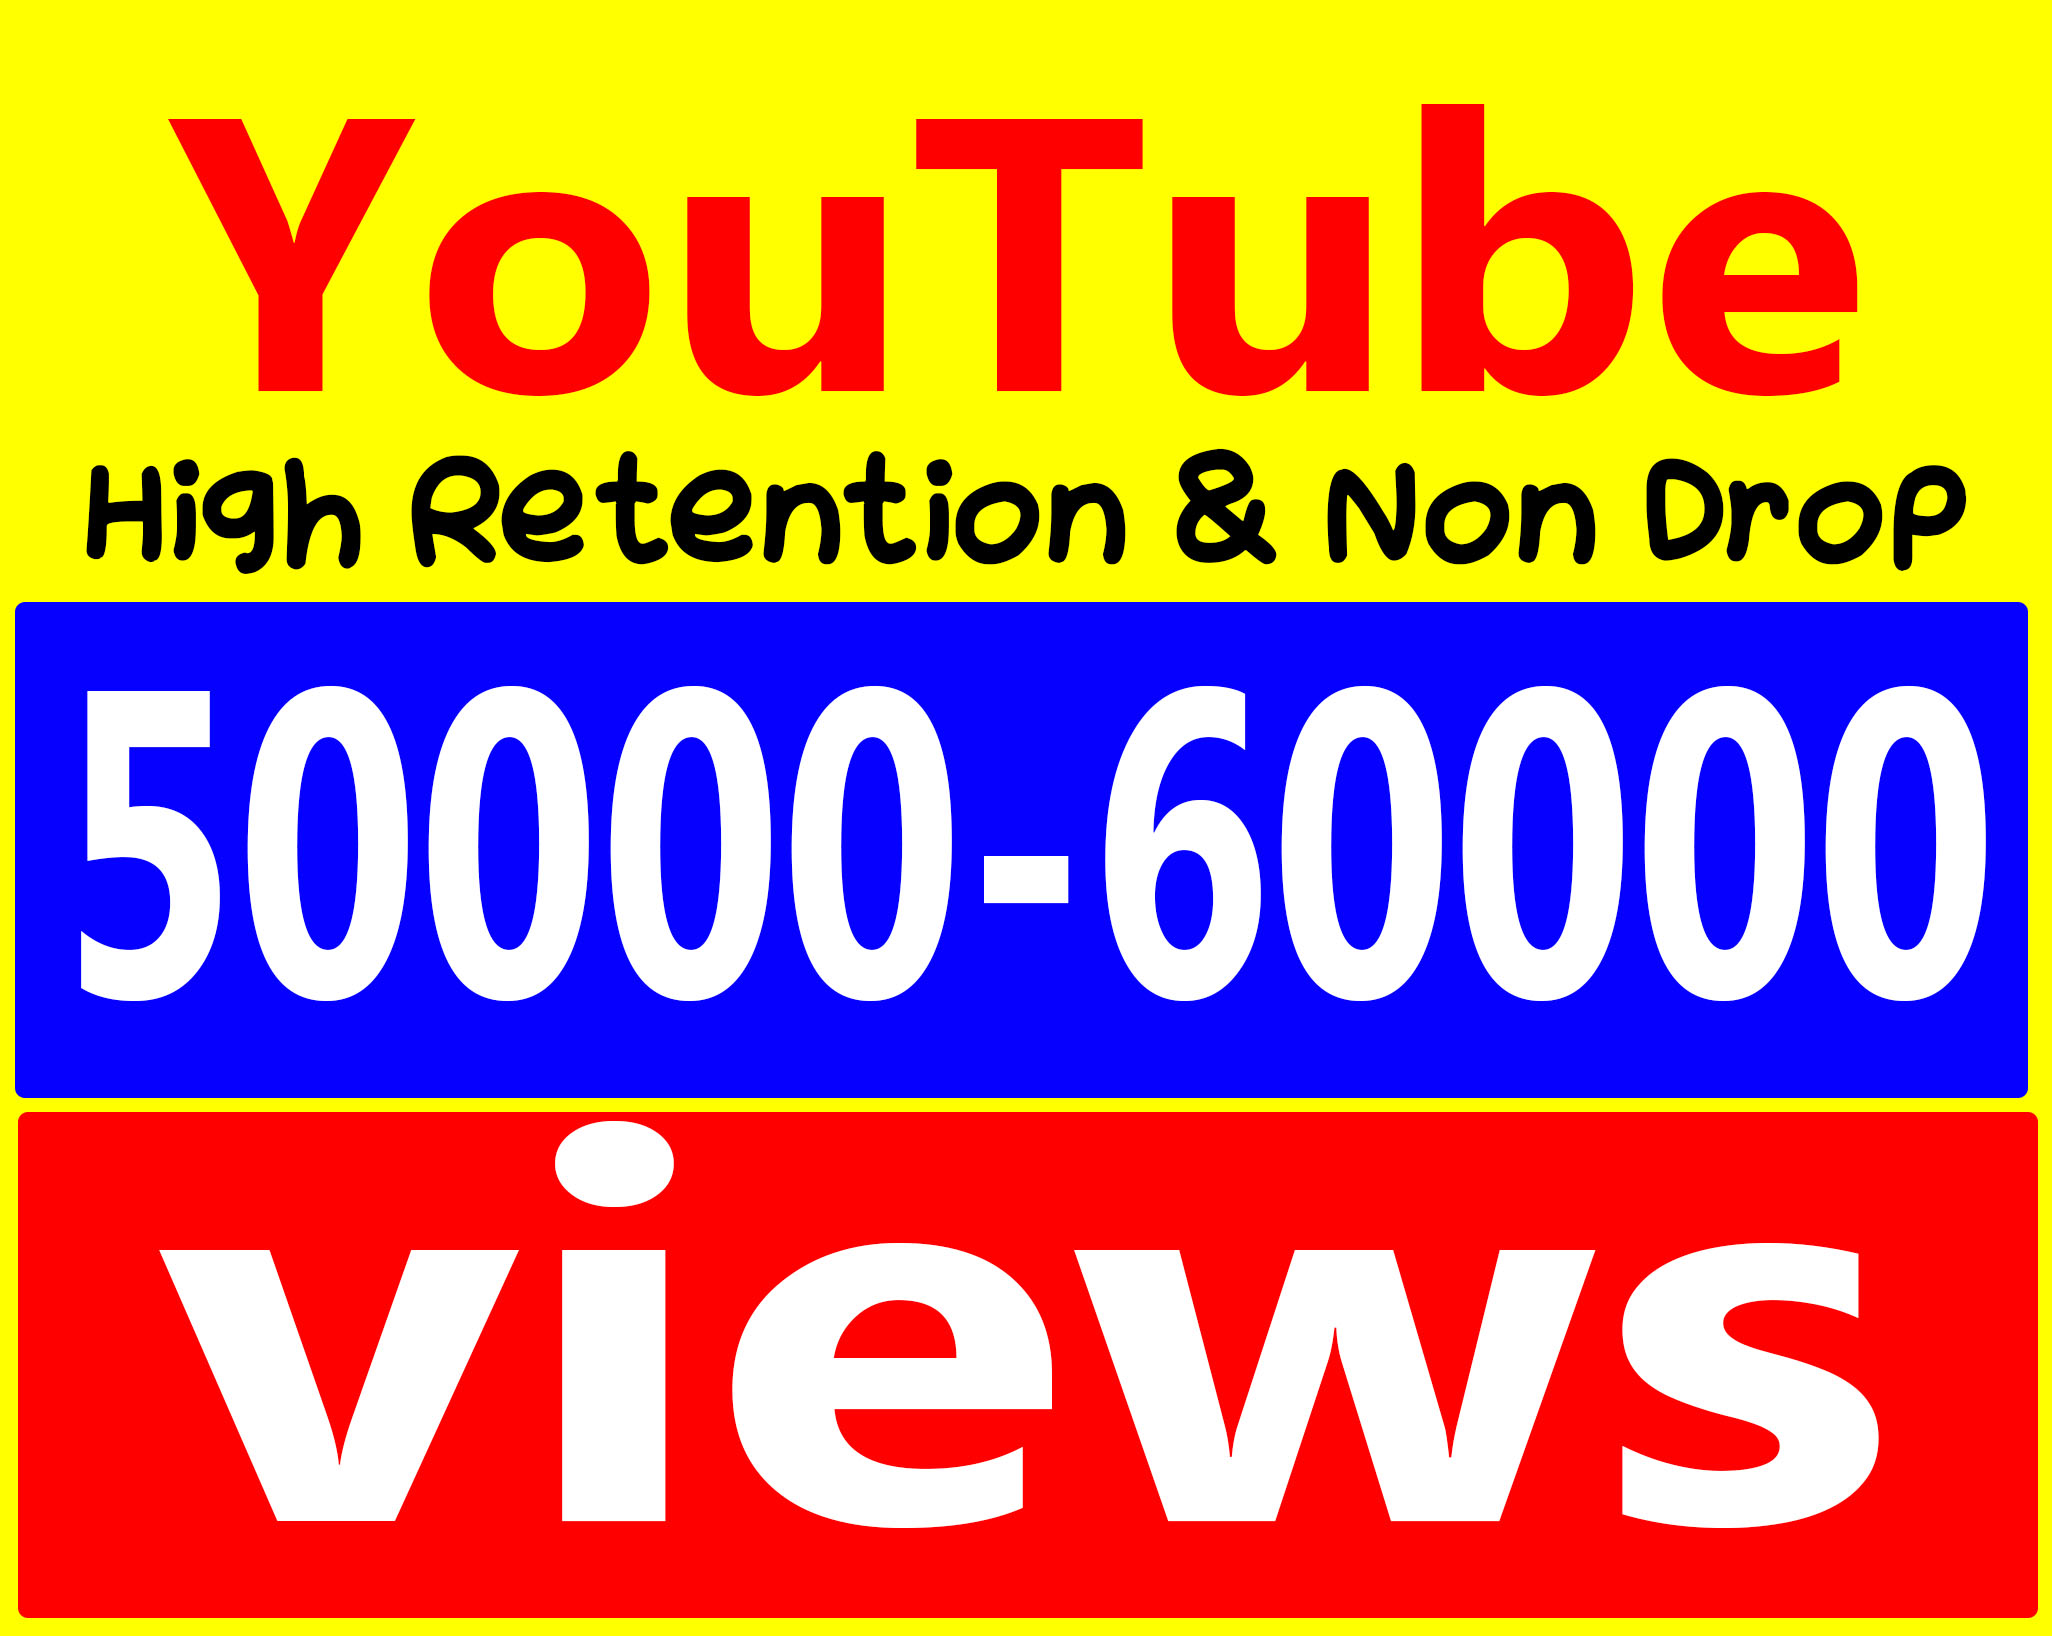 Fast 50,000 To 60,000 Views High Retention 9099 Adsense Safe amp Non Drop